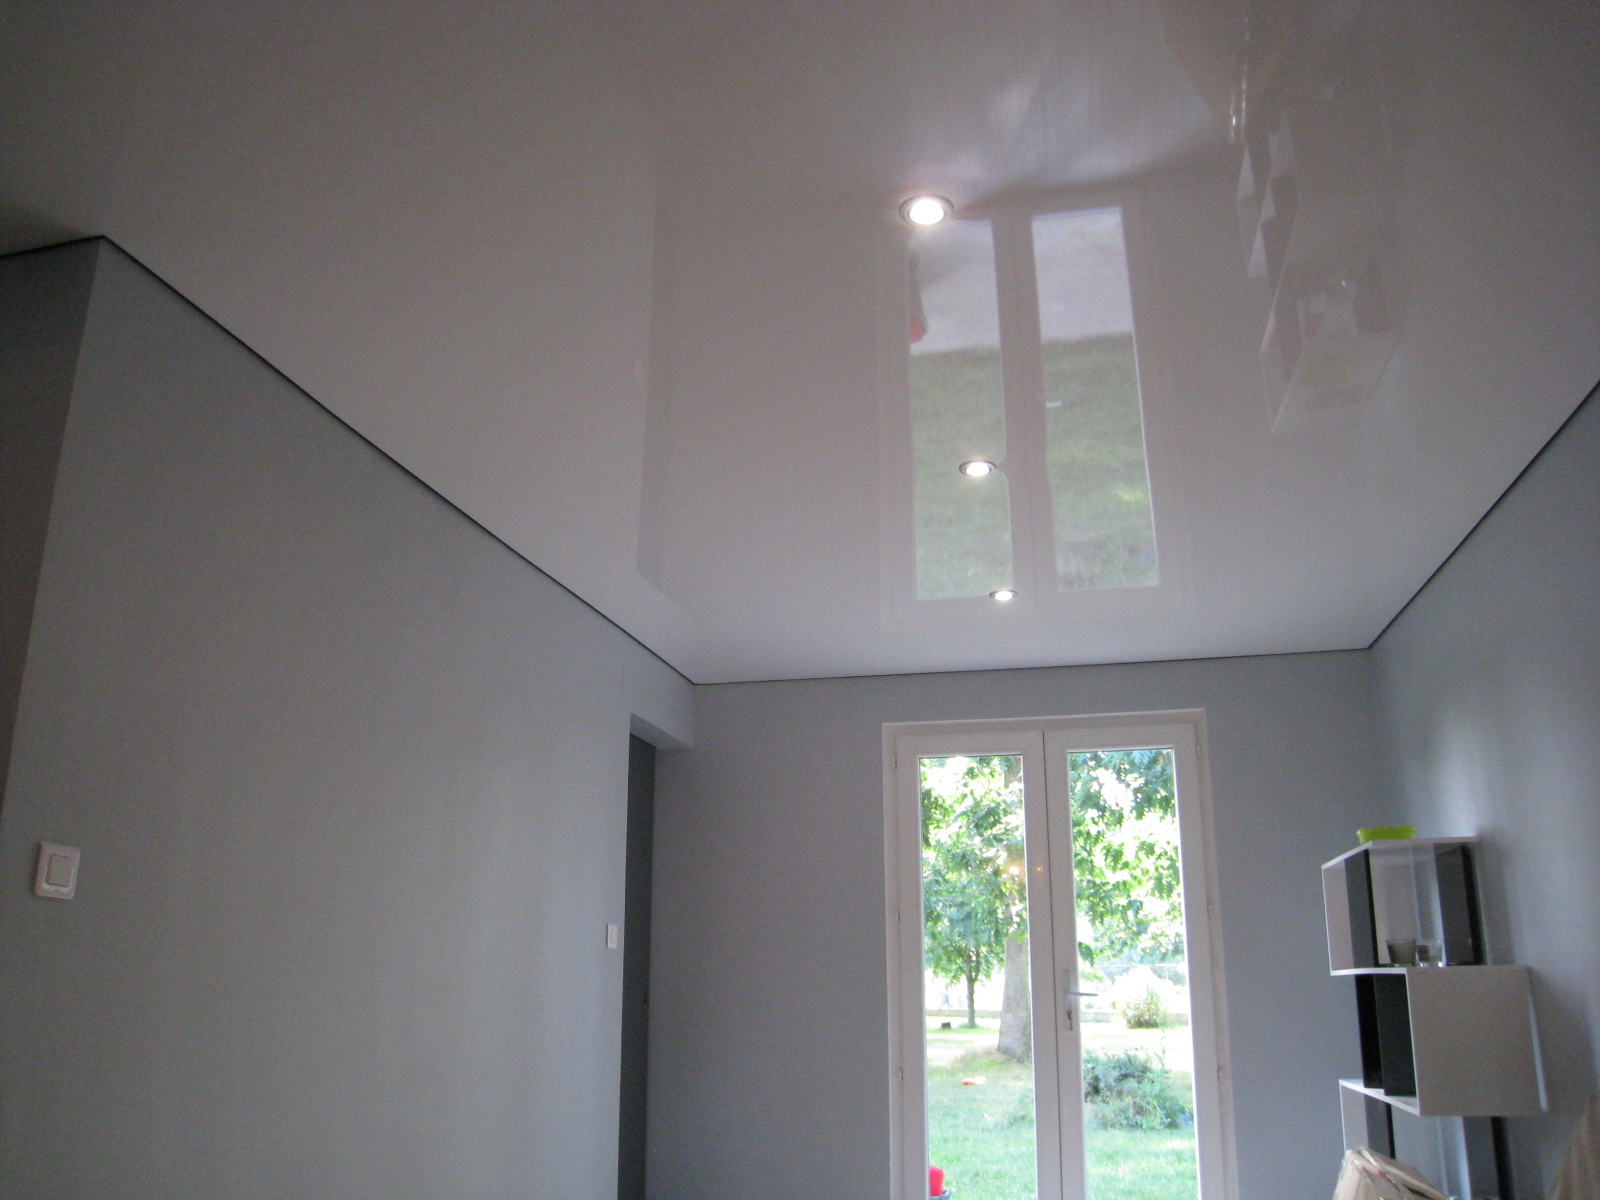 D coration r novation plafond tendu laqu by steeve mieulet for Peinture pour plafond sale